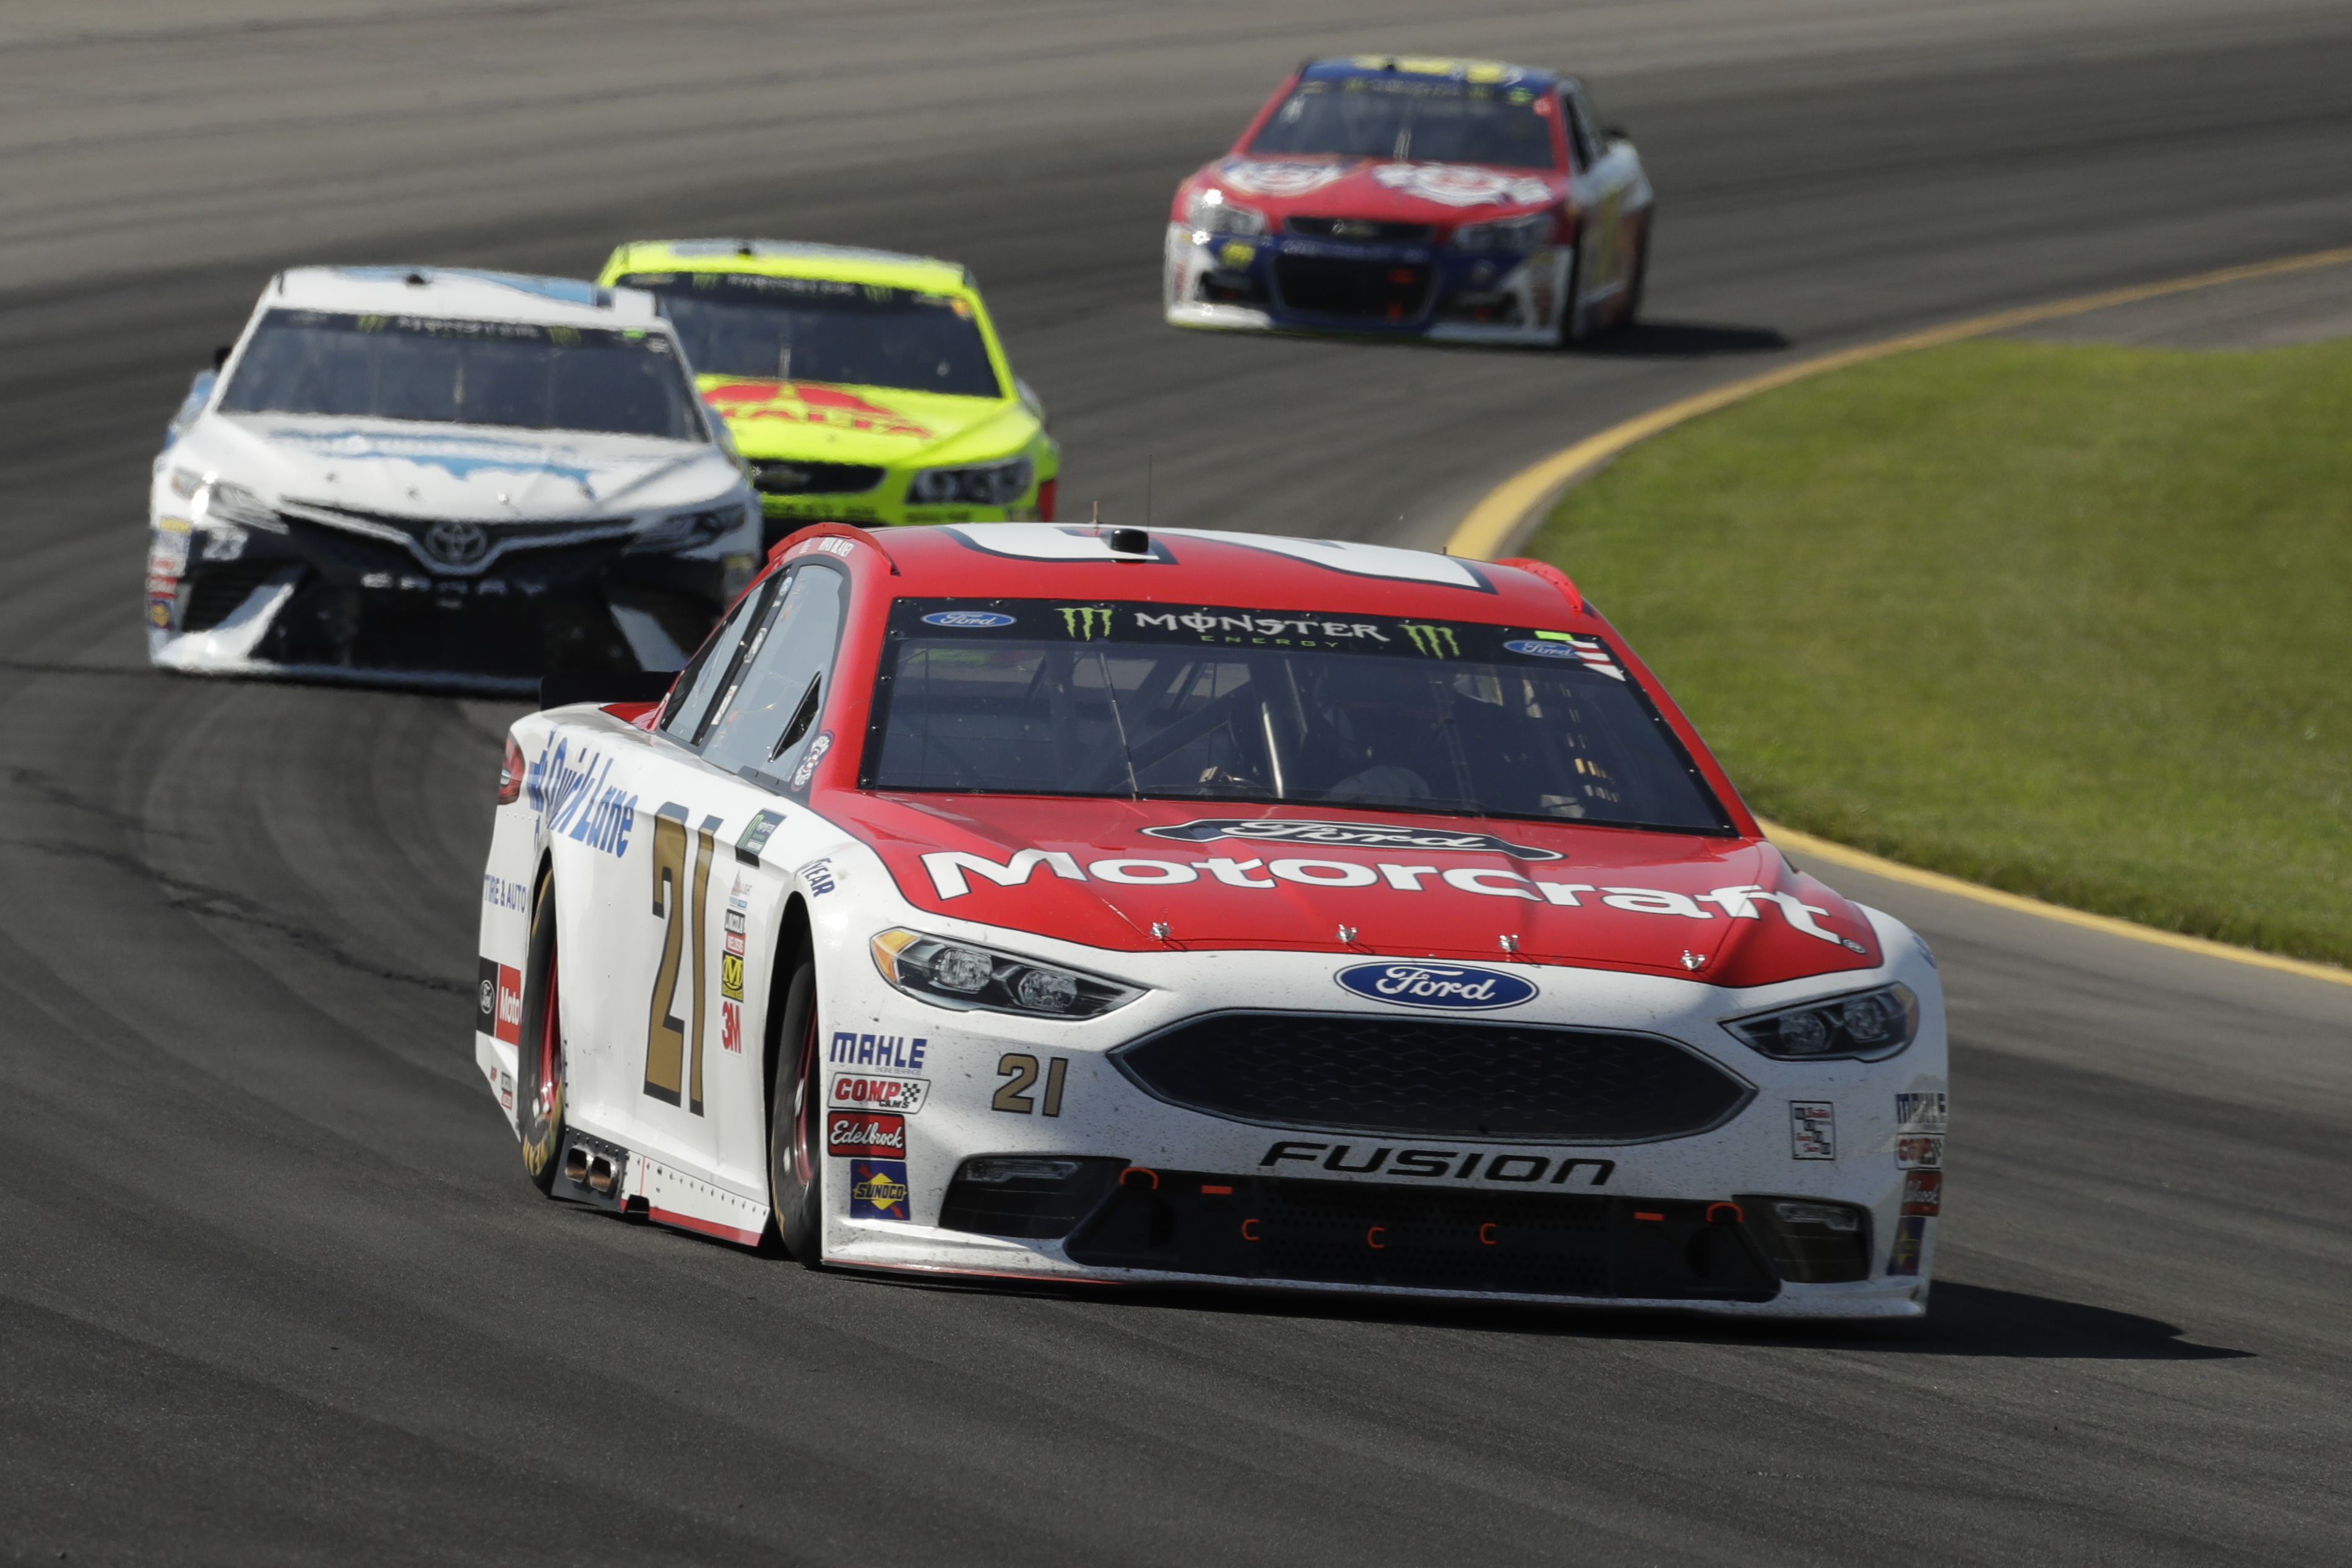 Ryan Blaney in action during the NASCAR Cup Series Pocono 400 auto race, Sunday, June 11, 2017, in Long Pond, Pa. (AP Photo/Matt Slocum)